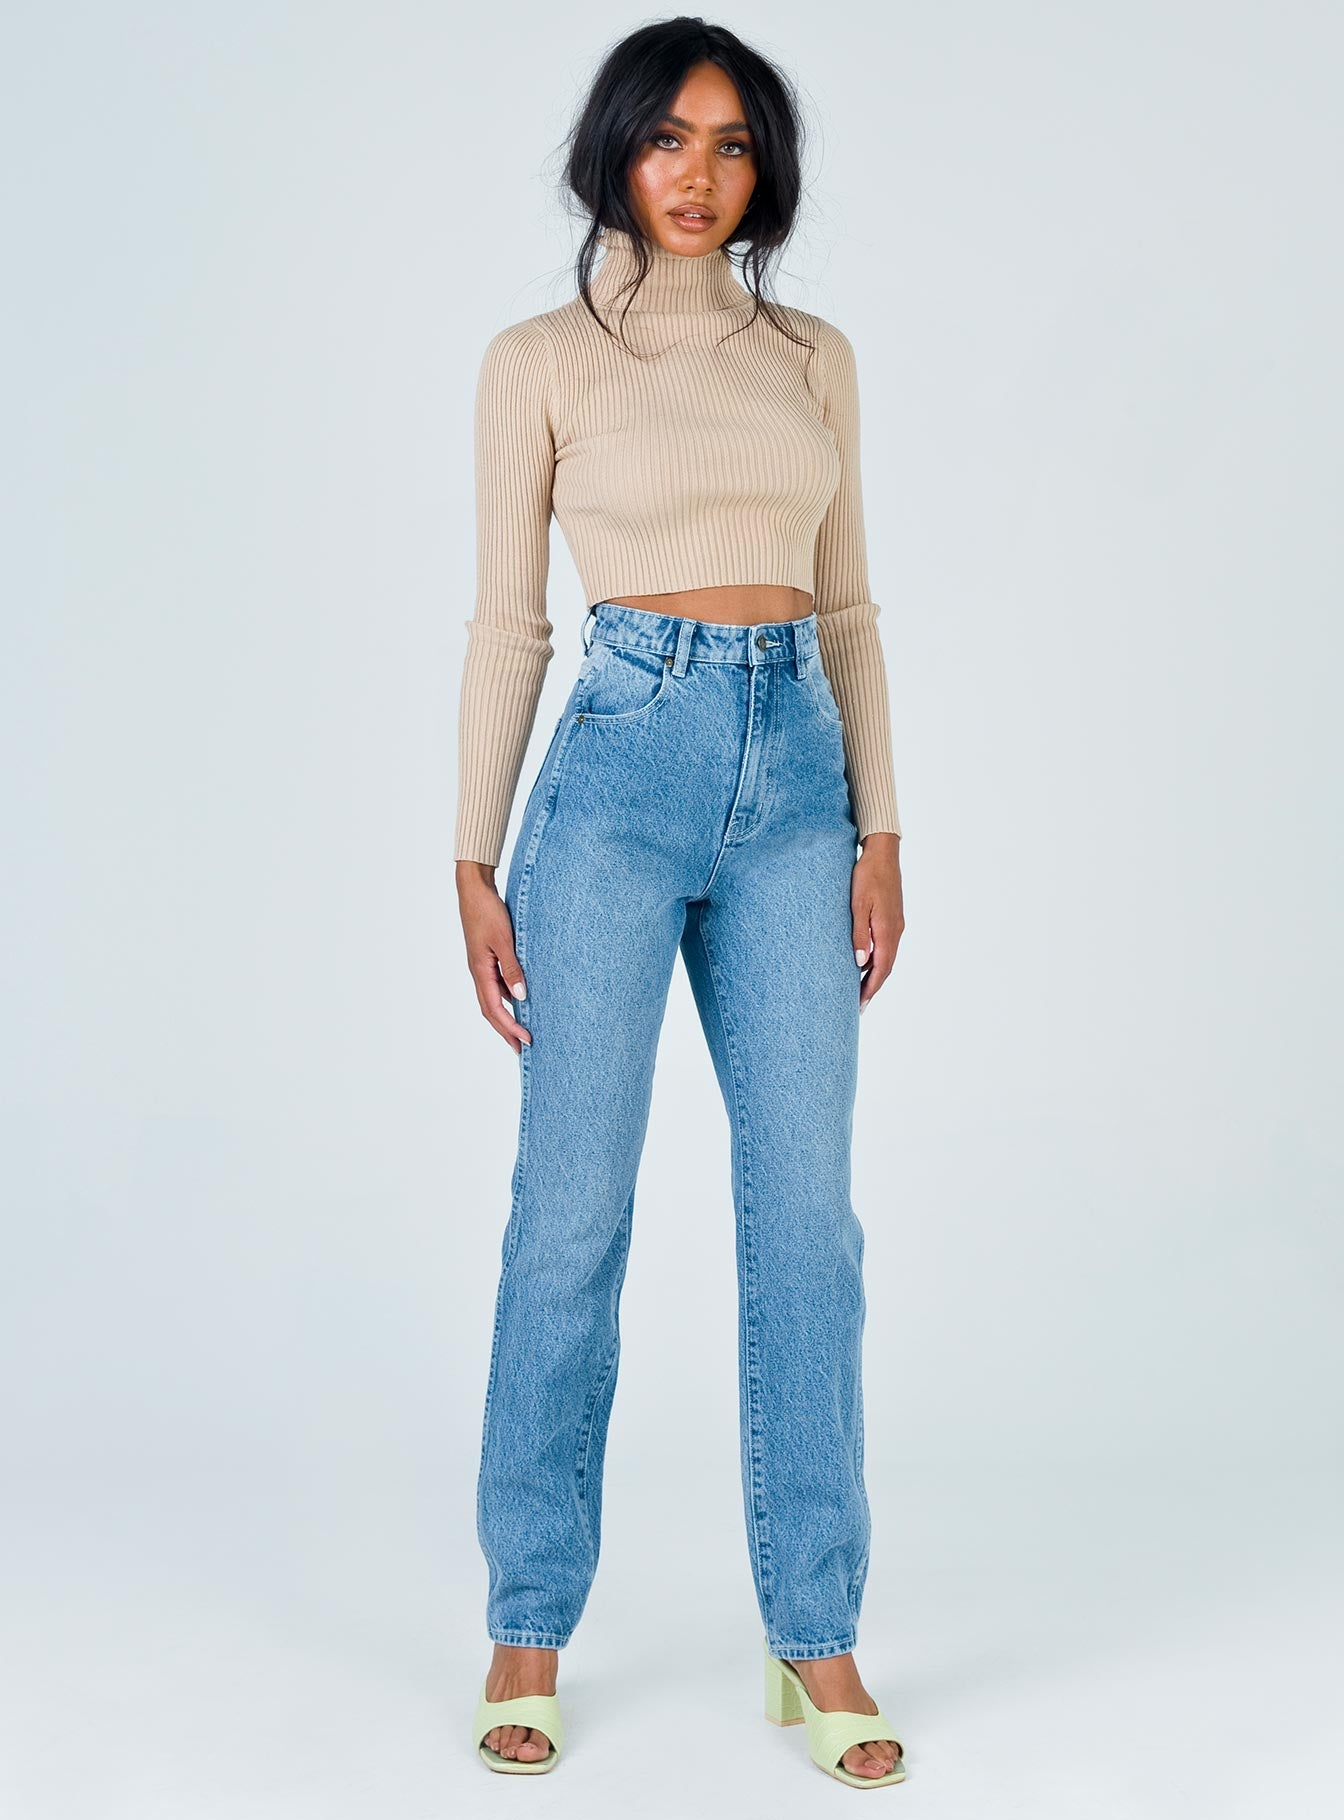 Rolla's Elle Jean Tumbled Blue